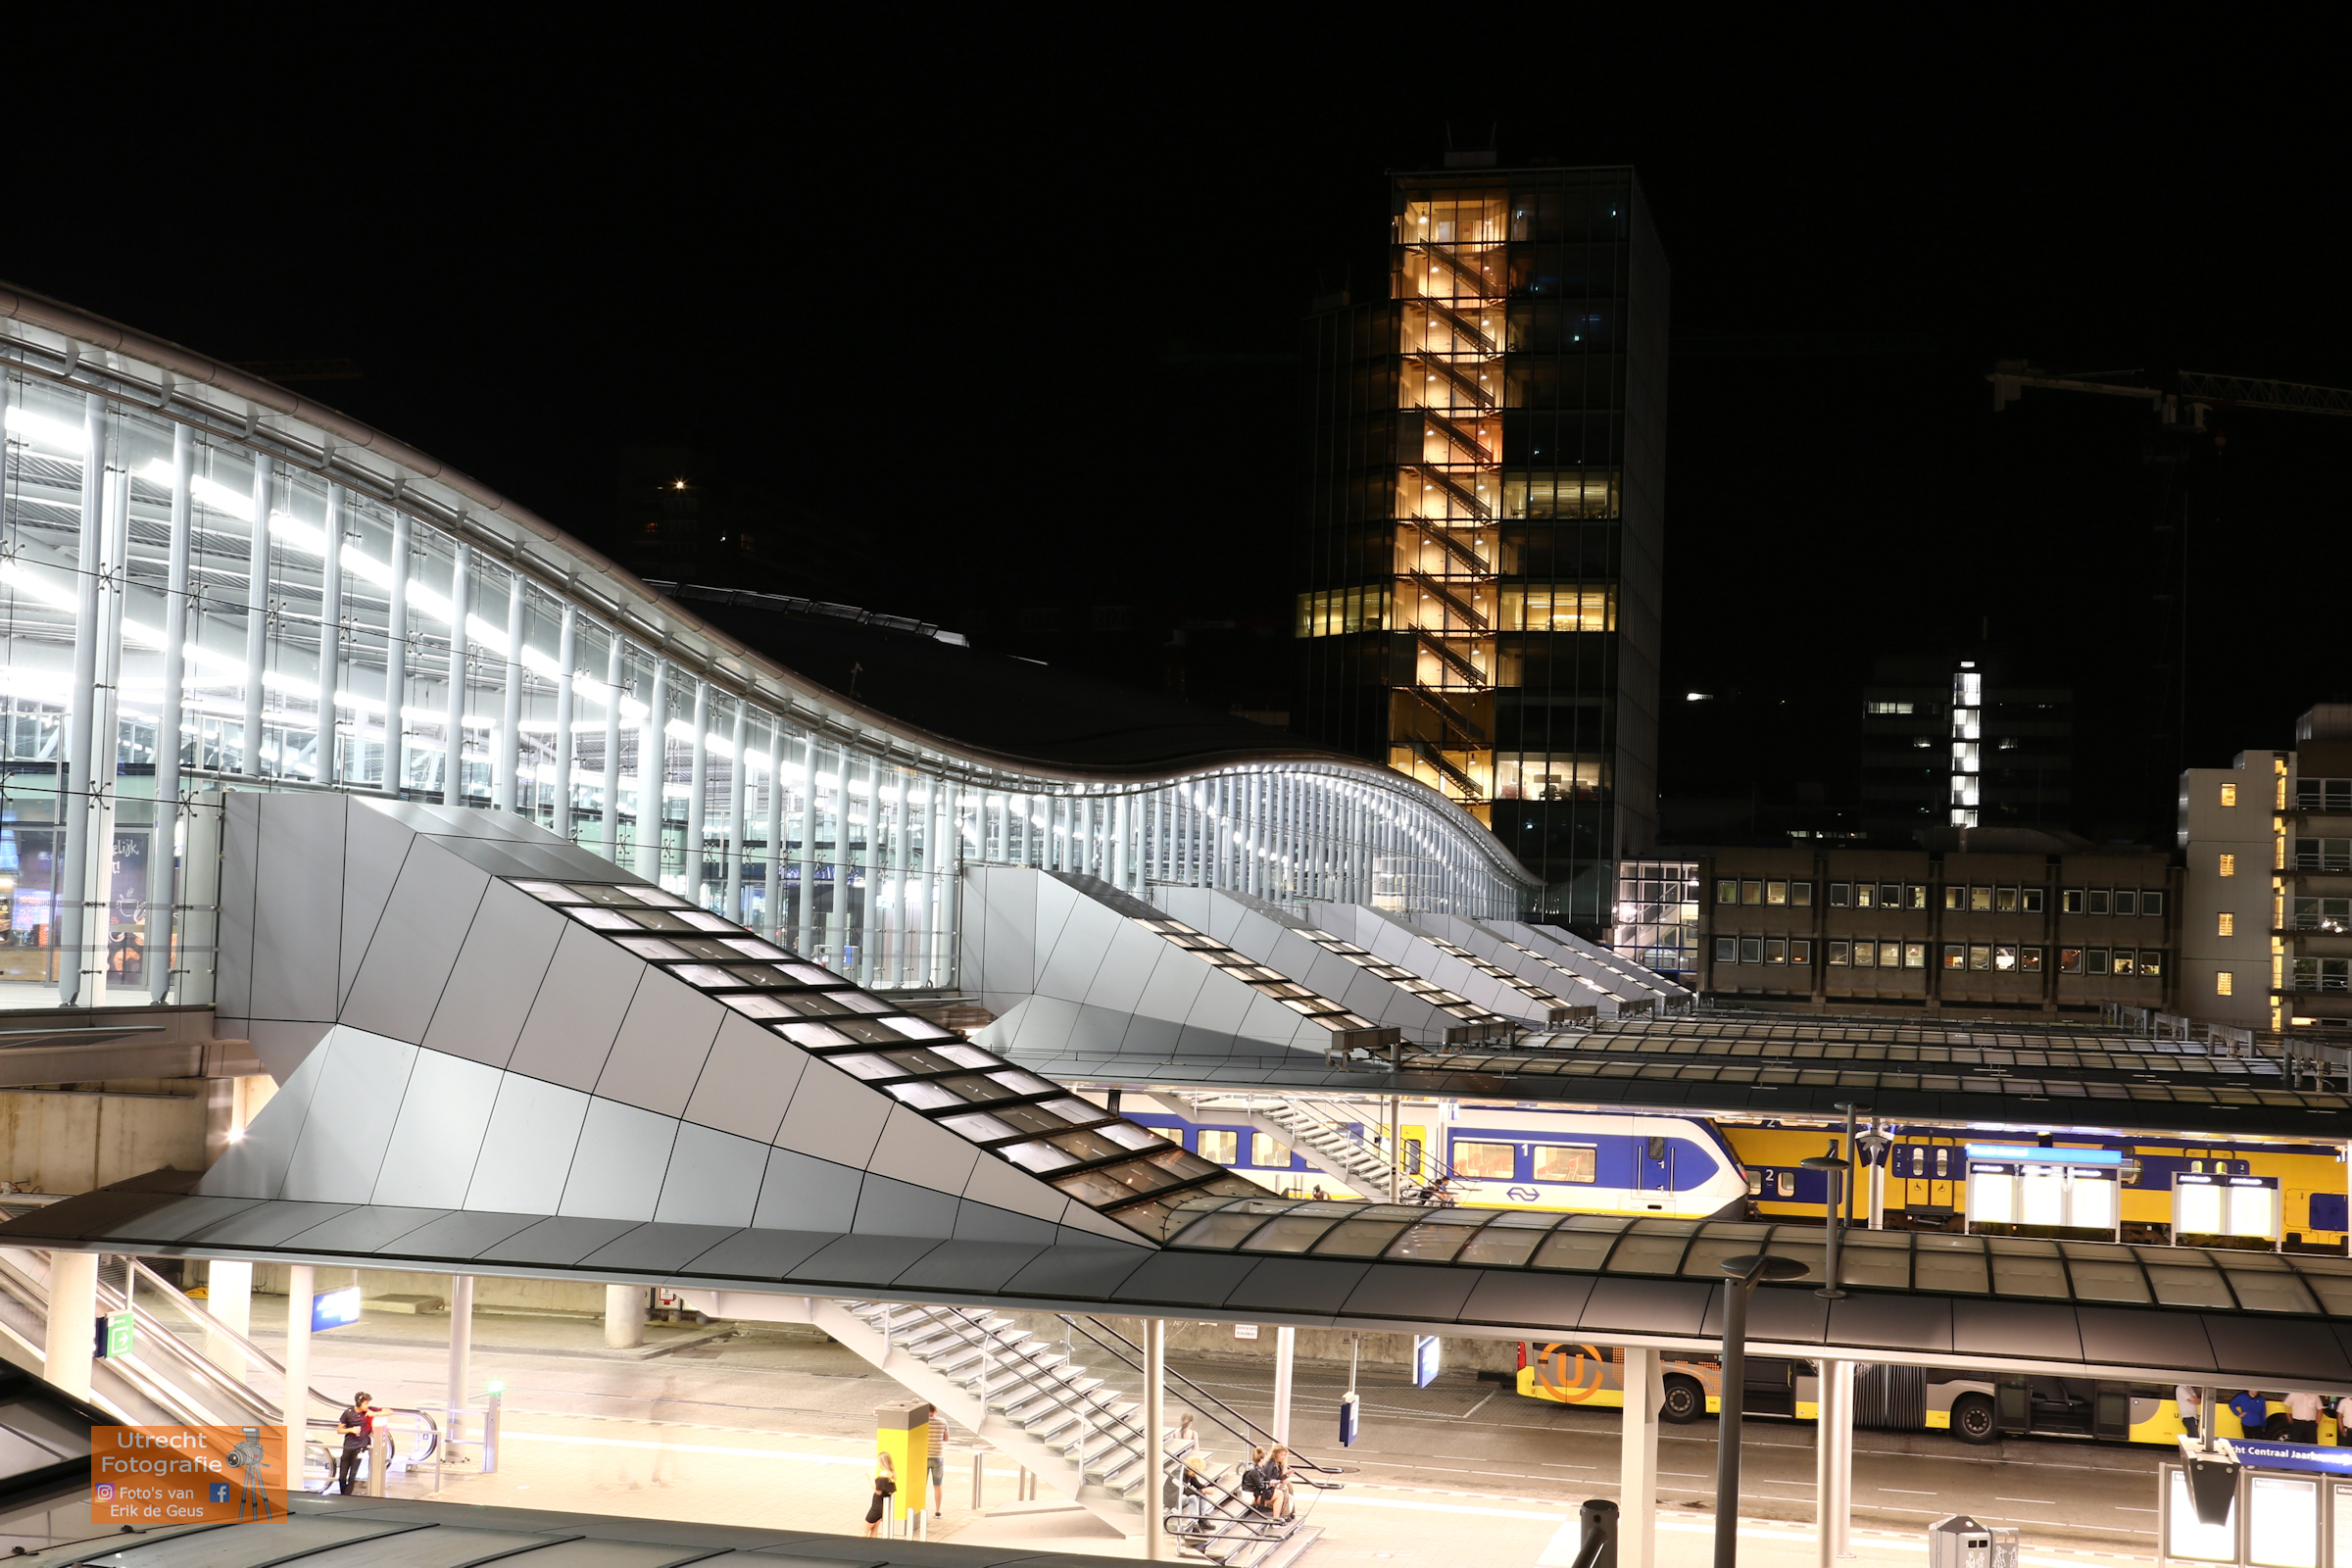 20180721 Centraal Station 02